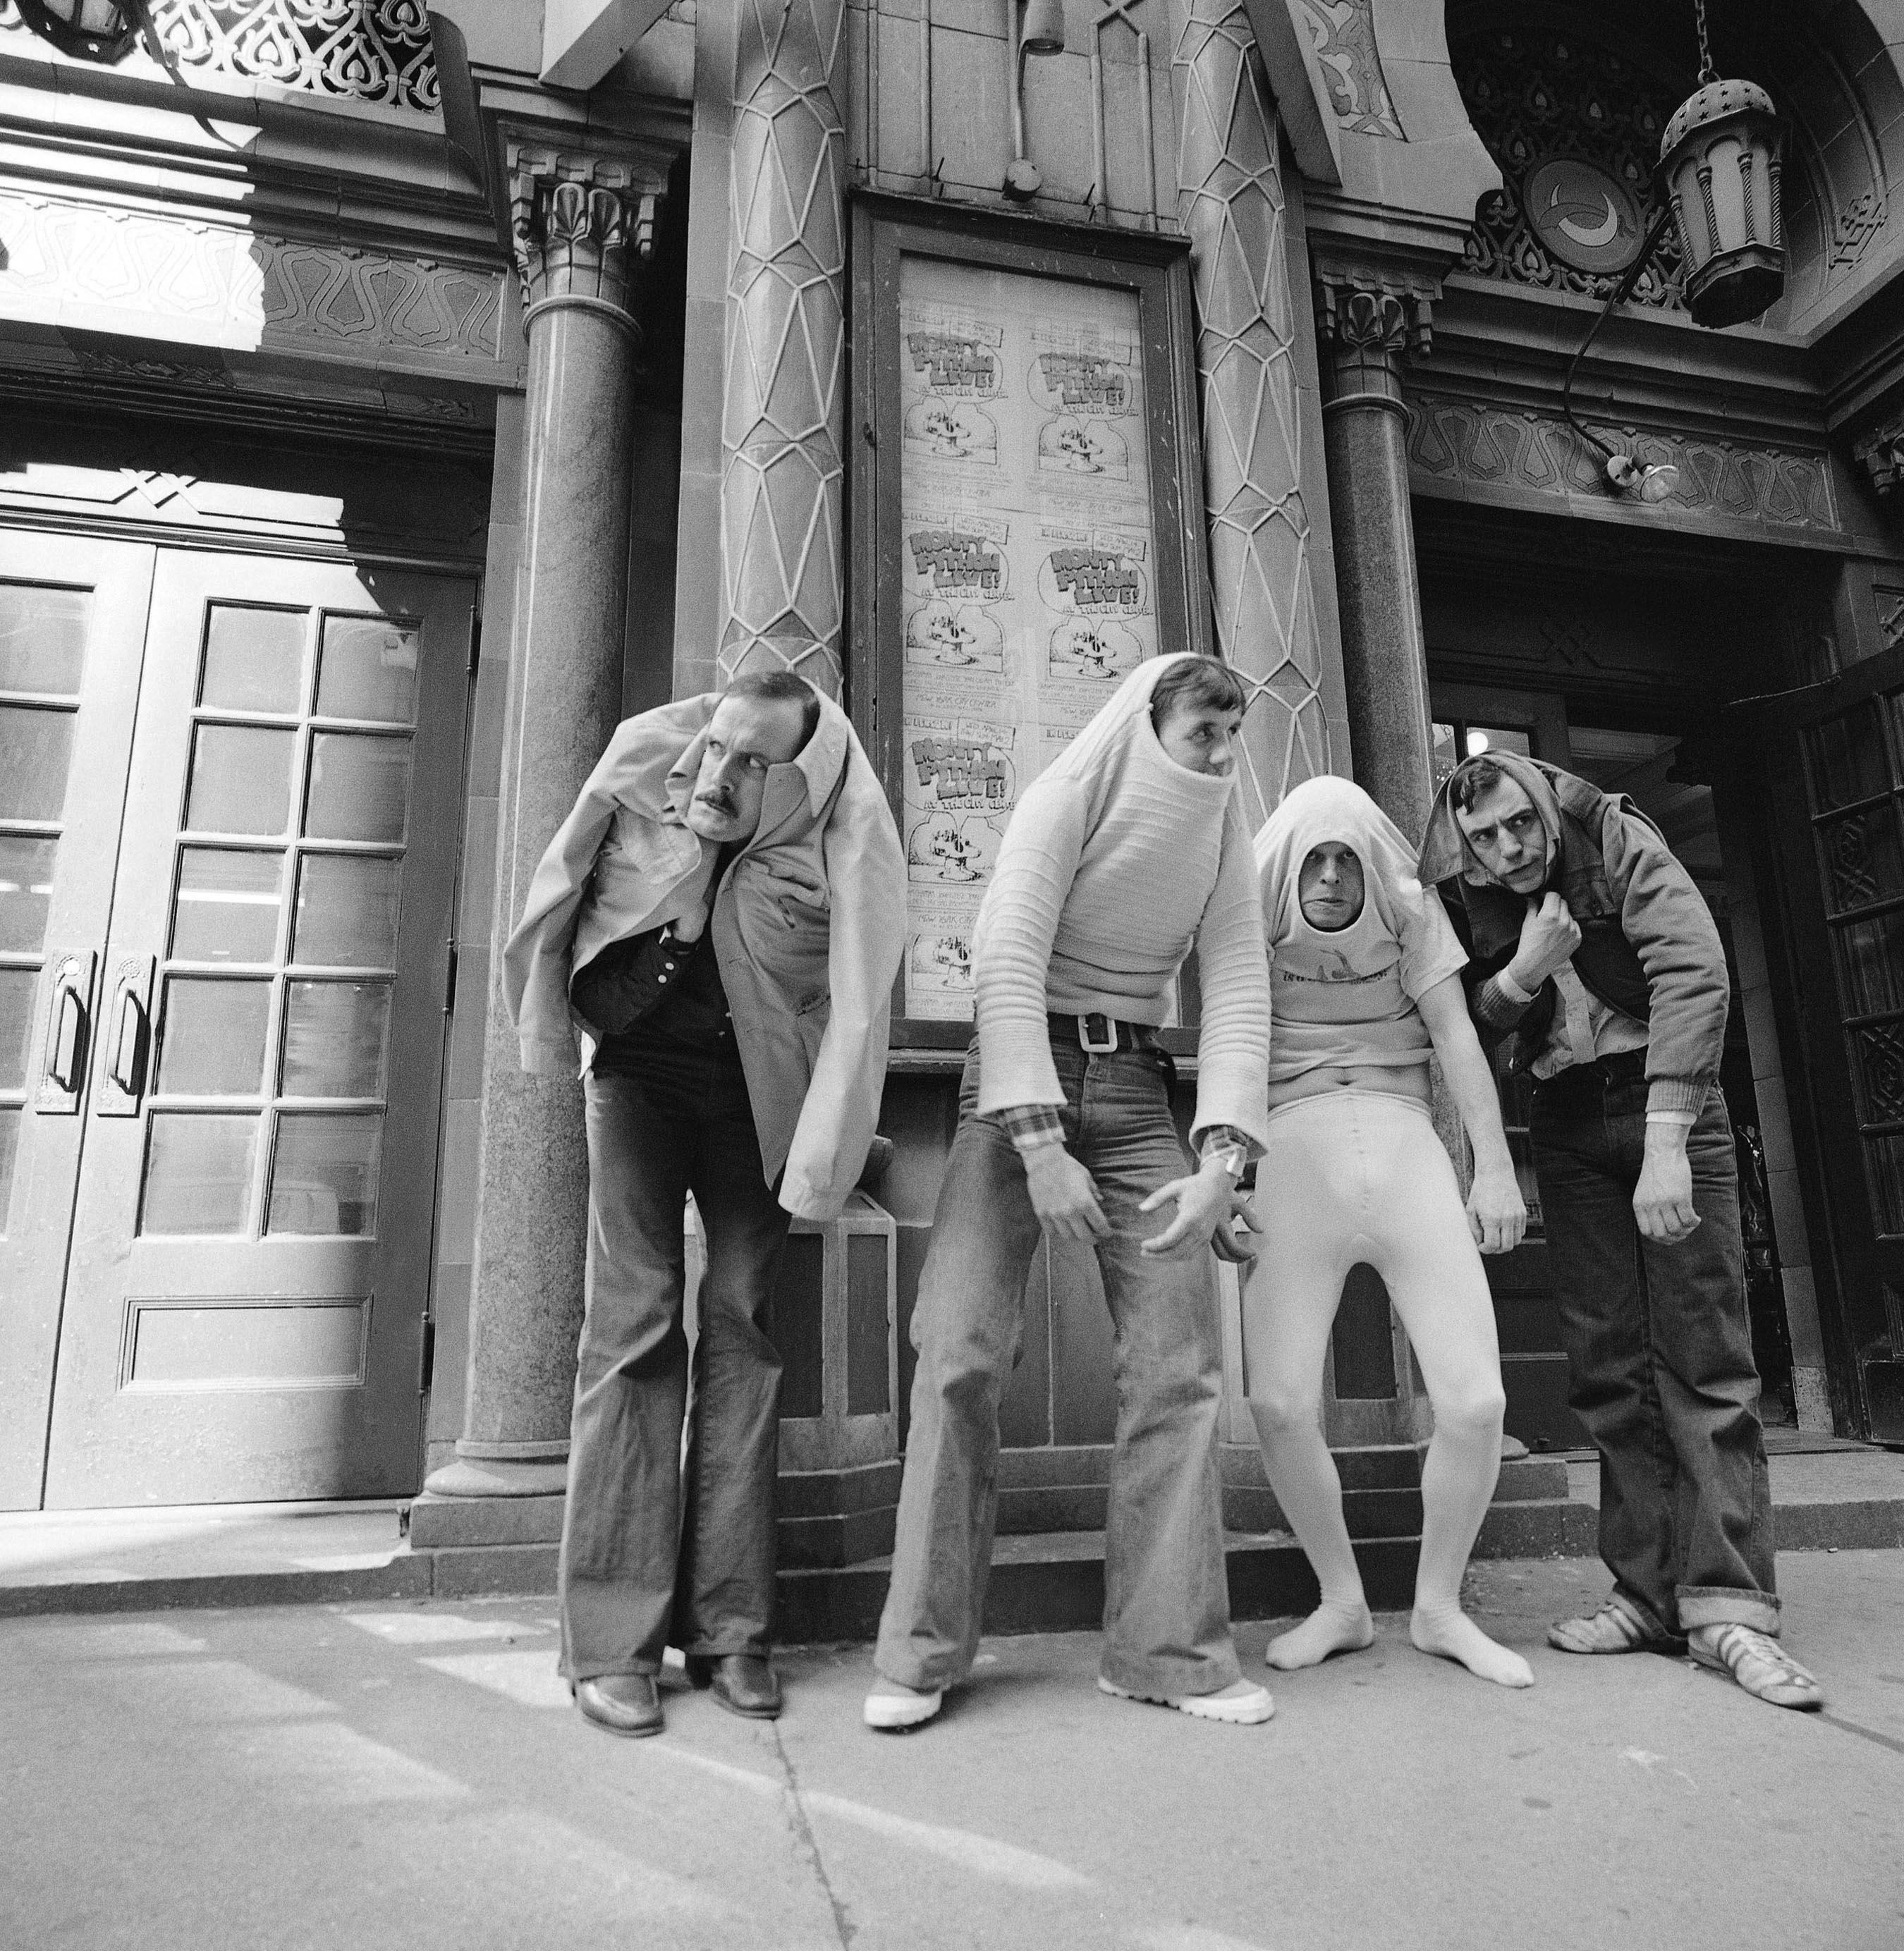 Monty Python to legendarna grupa komediowa założona pod koniec lat 60. W skład zespołu wchodzili Graham Chapman, John Cleese, Terry Gilliam, Eric Idle, Terry Jones i Michael Palin